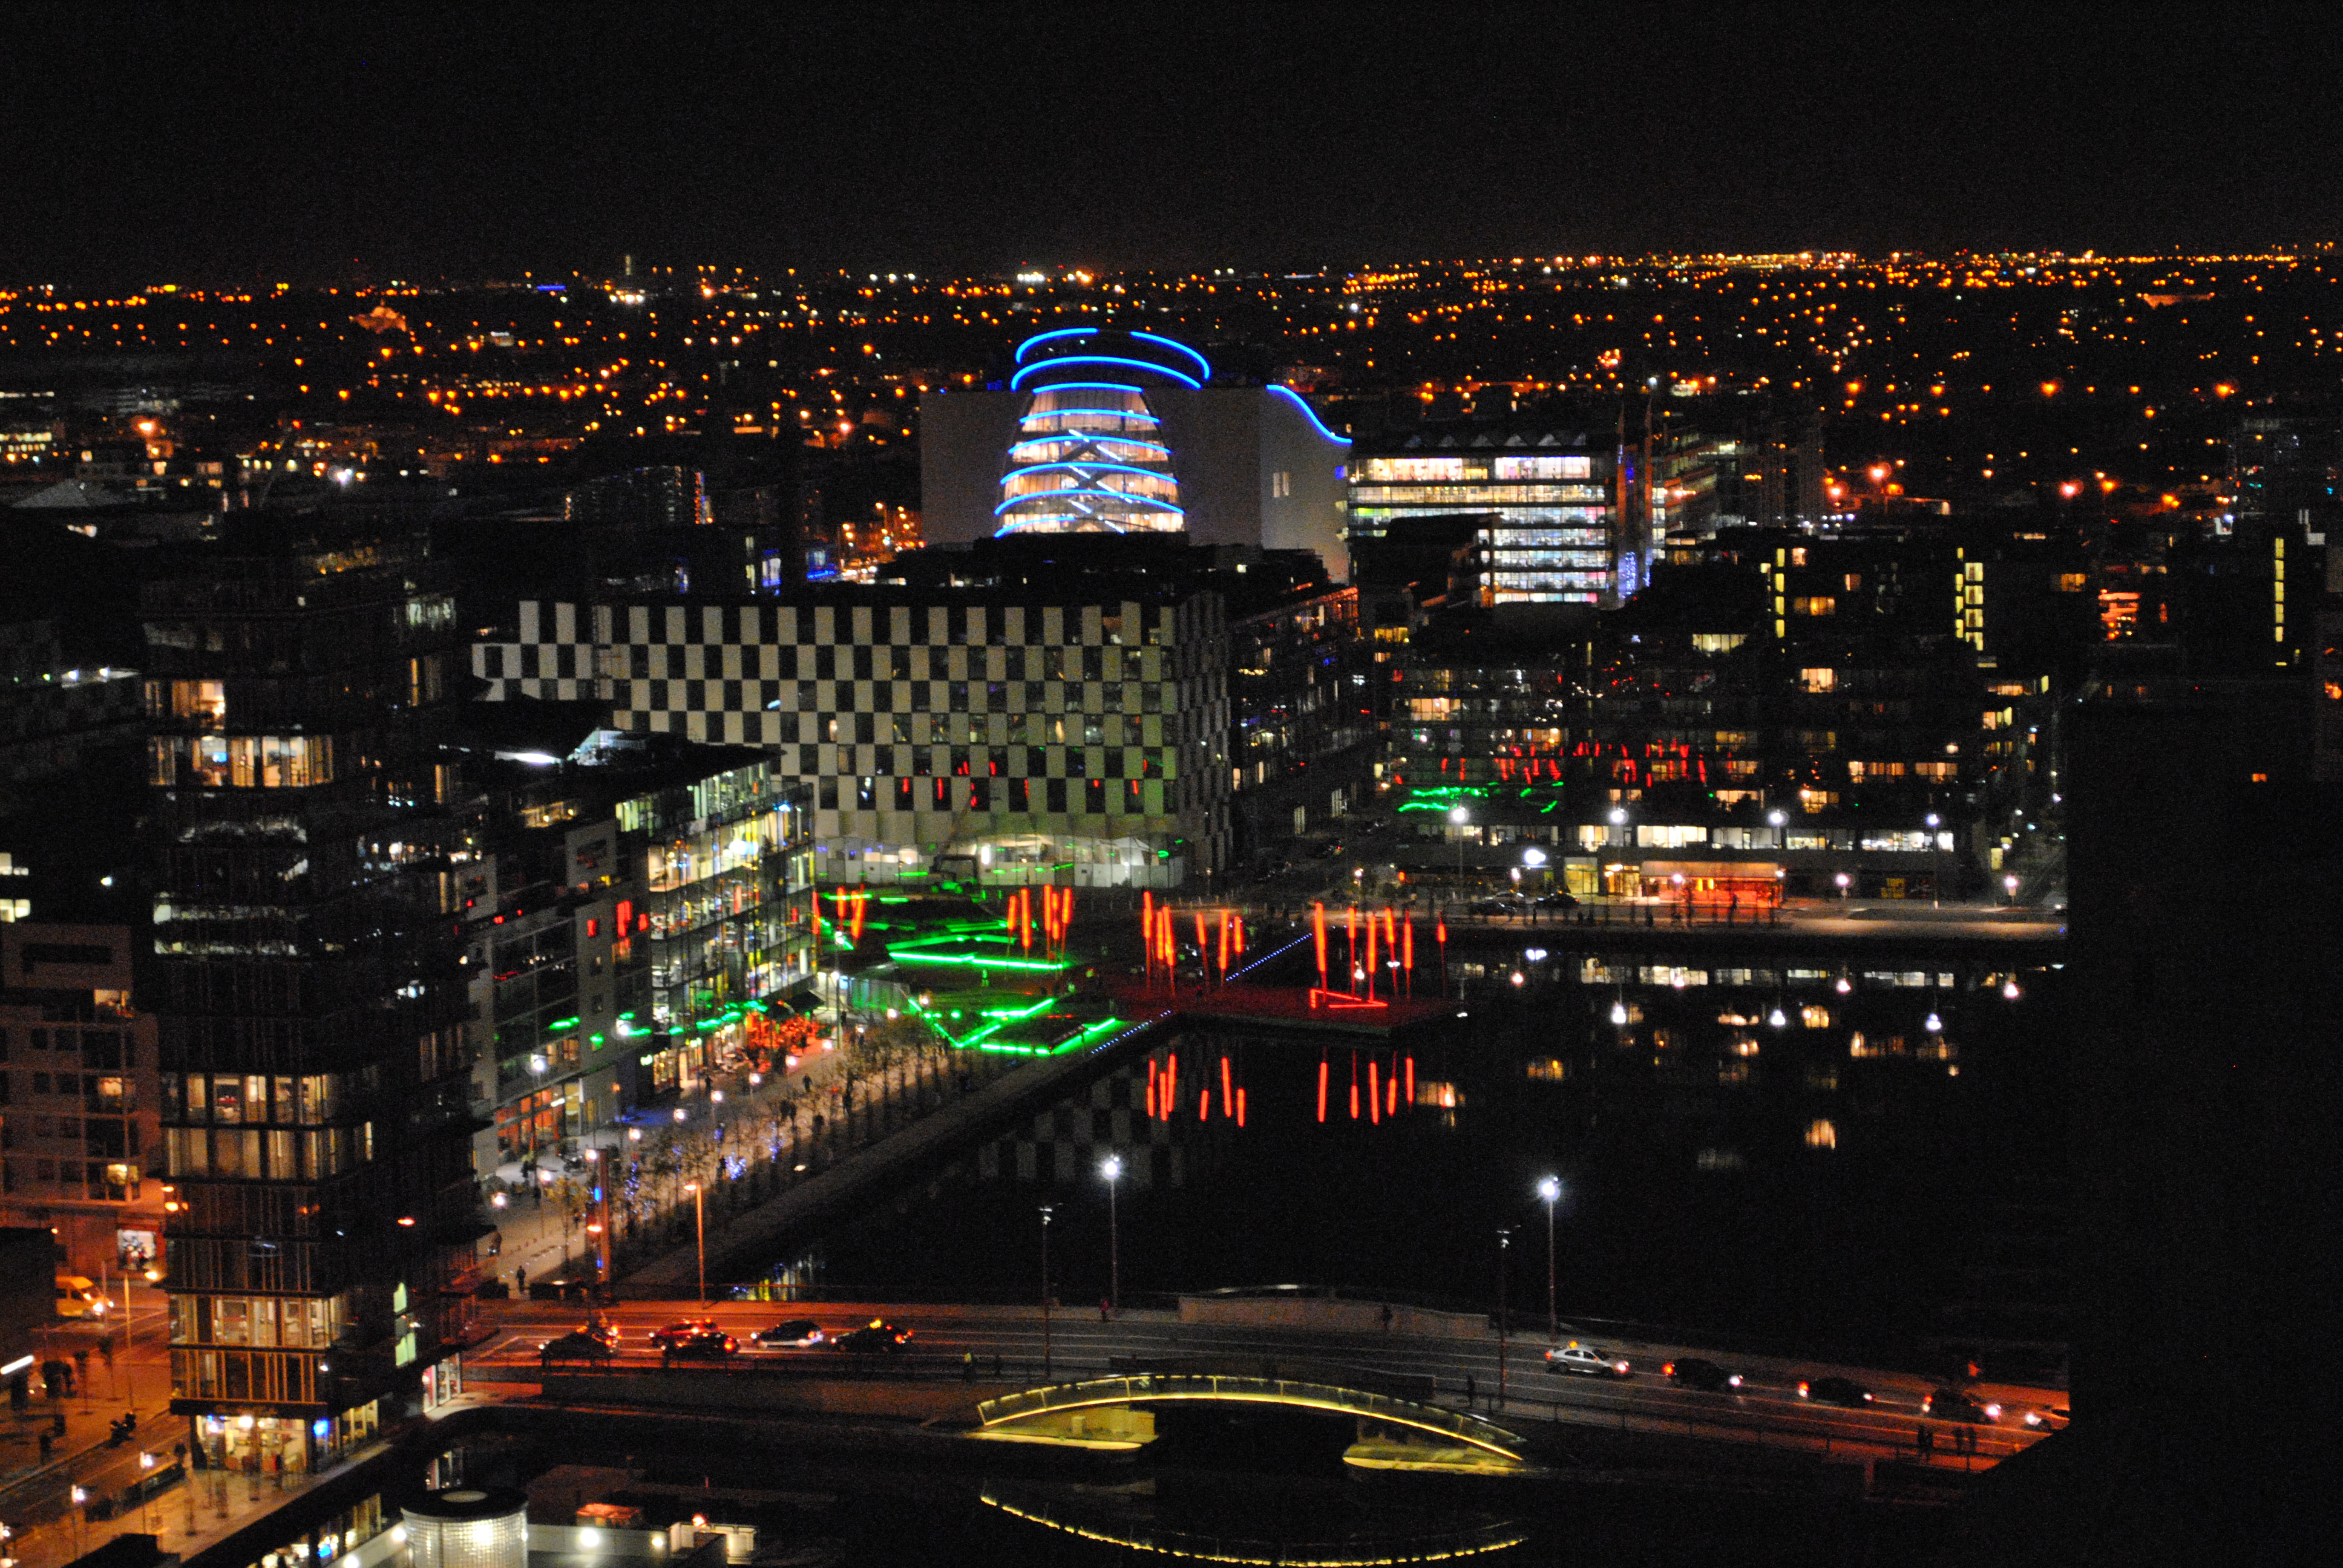 Dublin Night Out Dublin Night View Across